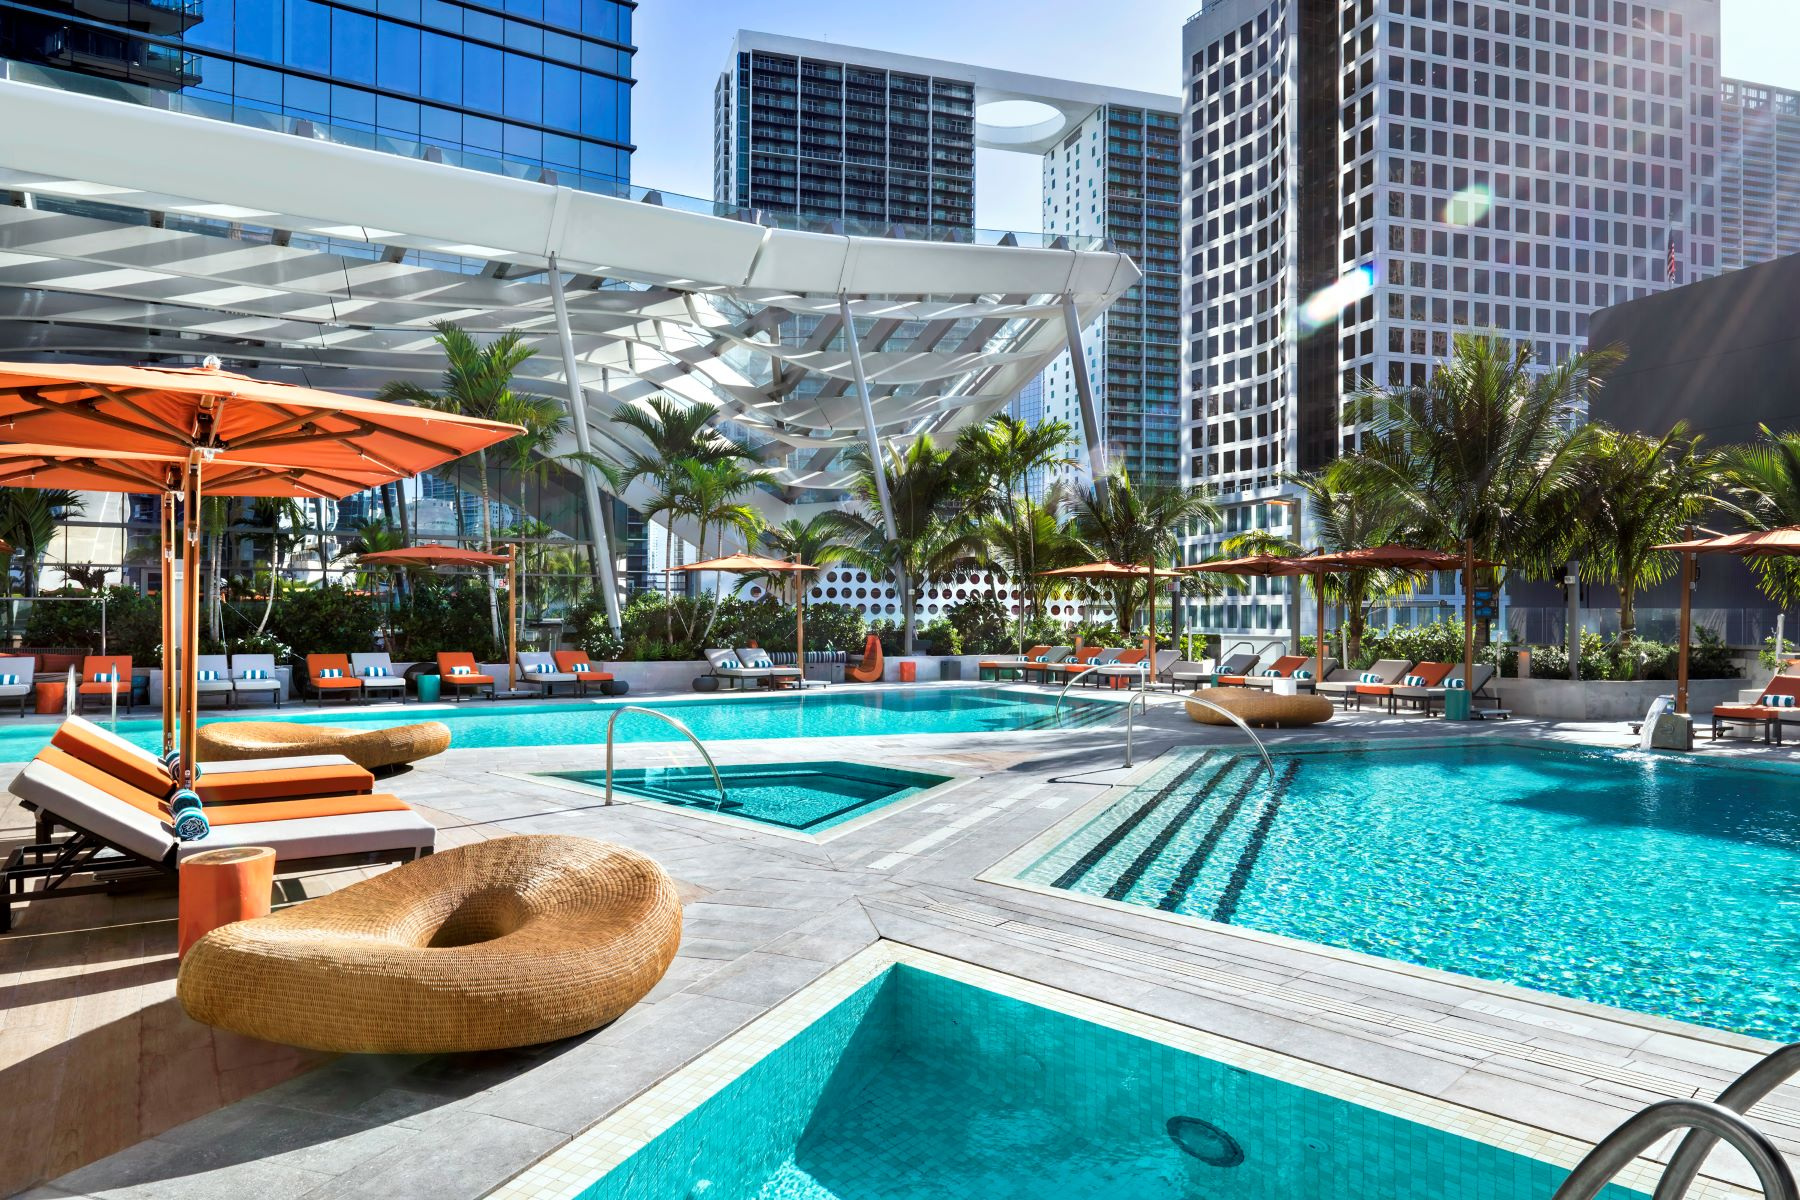 شقة بعمارة للـ Rent في 788 Brickell Plaza 788 Brickell Plaza 1101 Miami, Florida 33131 United States